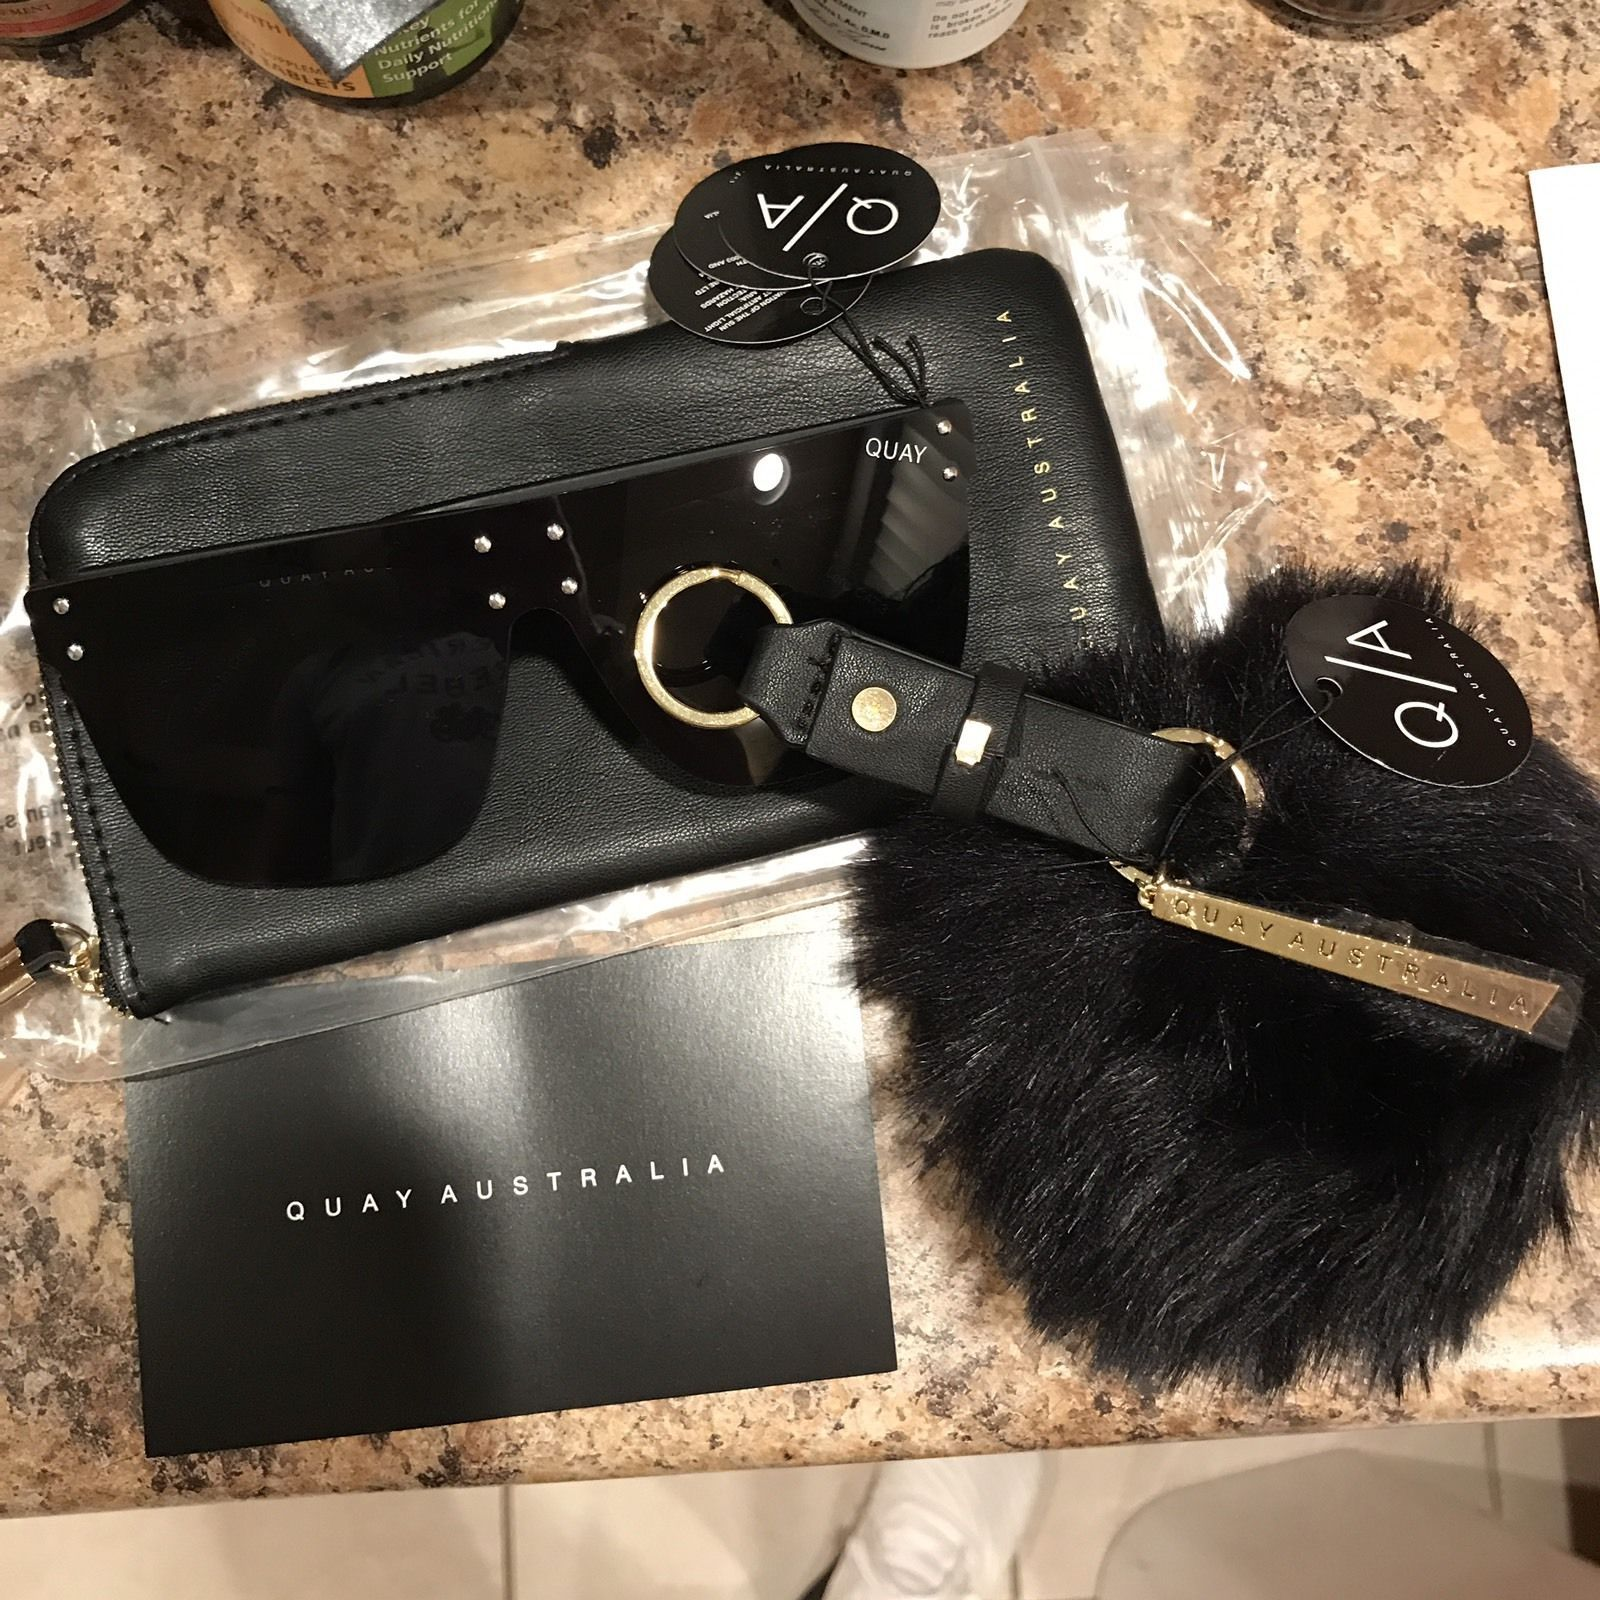 c0e7418202 Quay Kylie Jenner Hidden Hills Sunglasses Black With Pom And Packaging   black  with  packaging  sunglasses  hills  kylie  jenner  hidden  quay